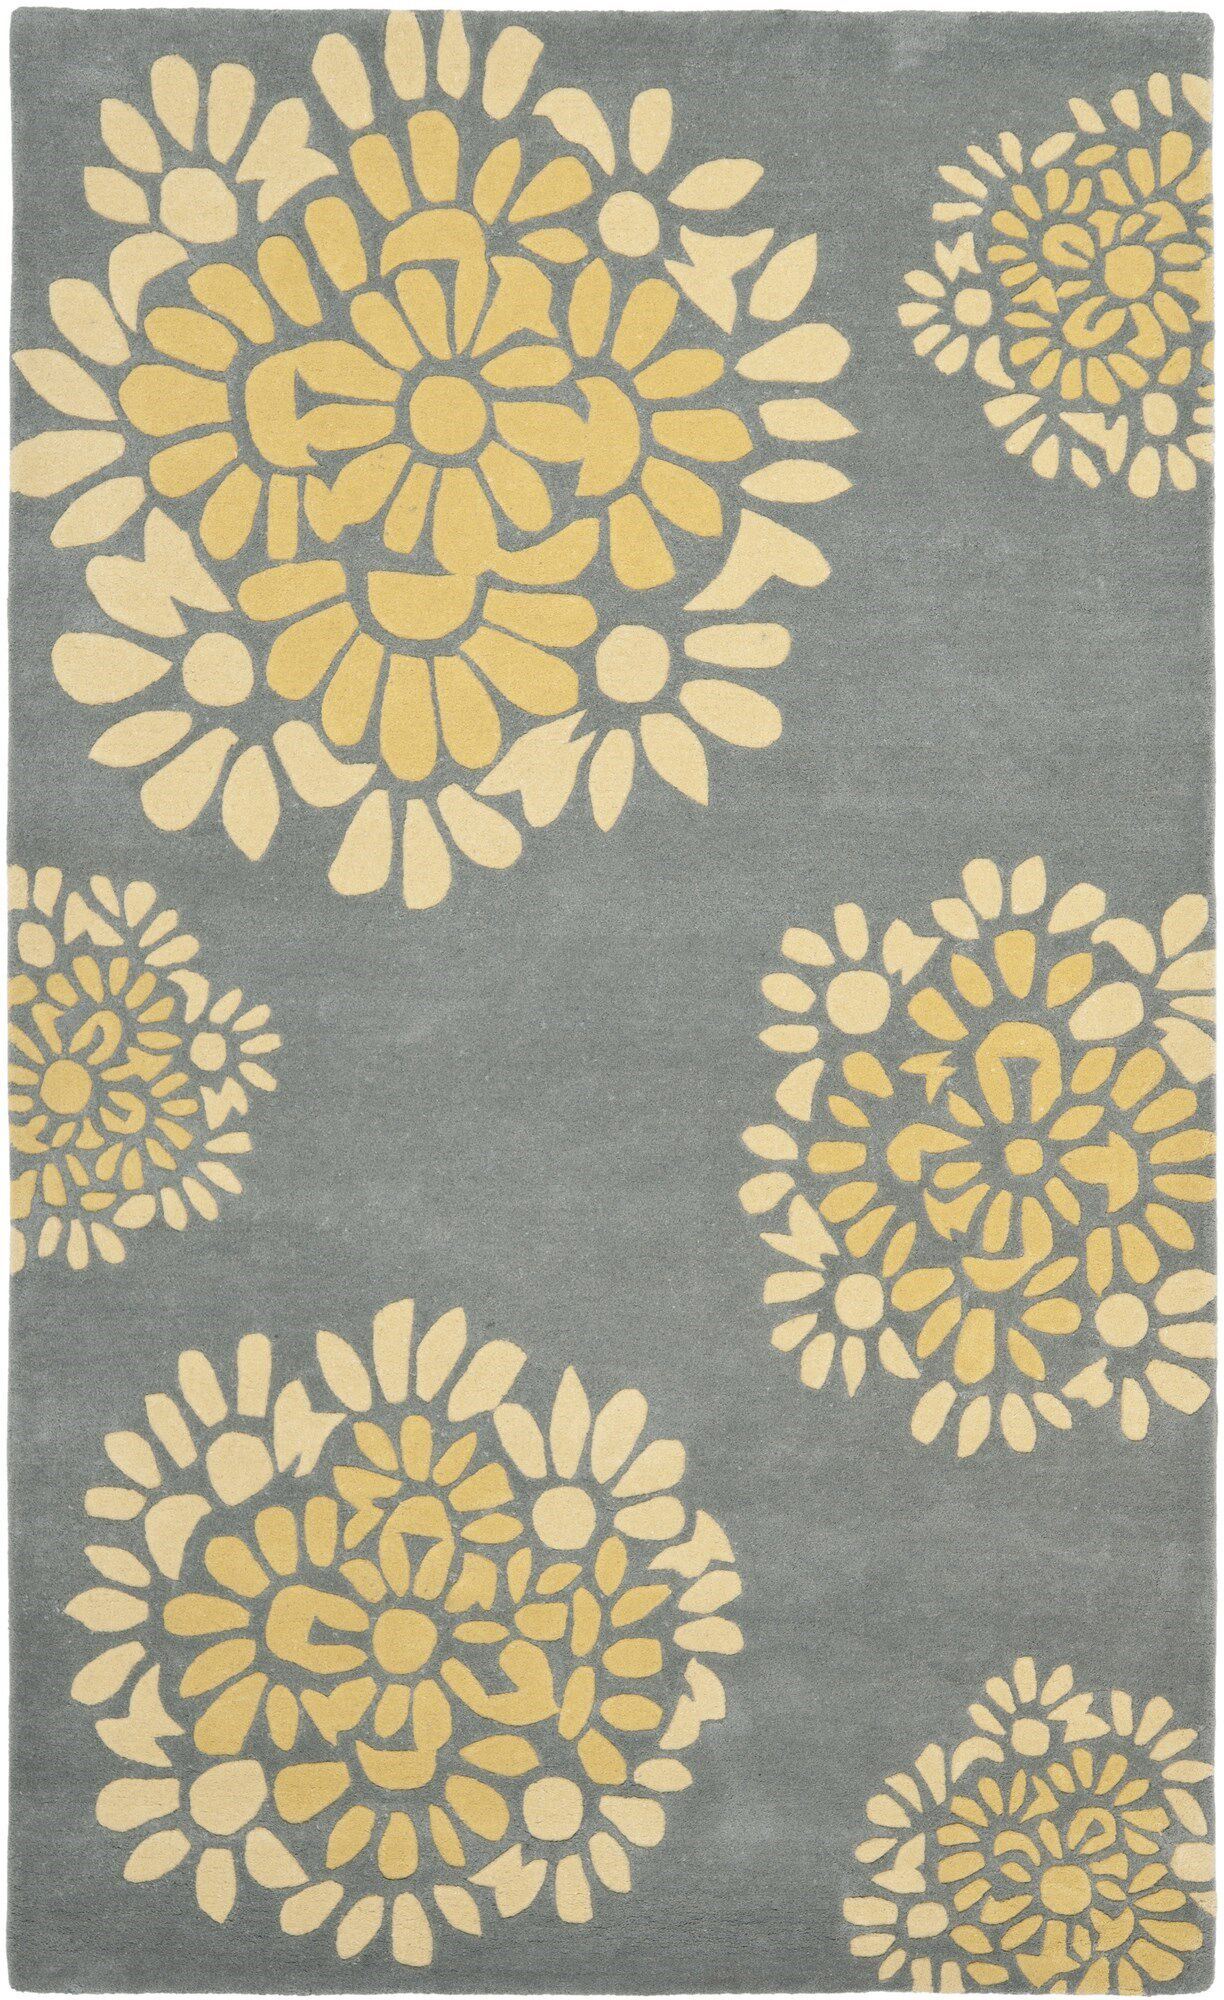 Sunny Petal Mosaic Hand Tufted Wool/Cotton Cement Area Rug Rug Size: Rectangle 5' x 8'